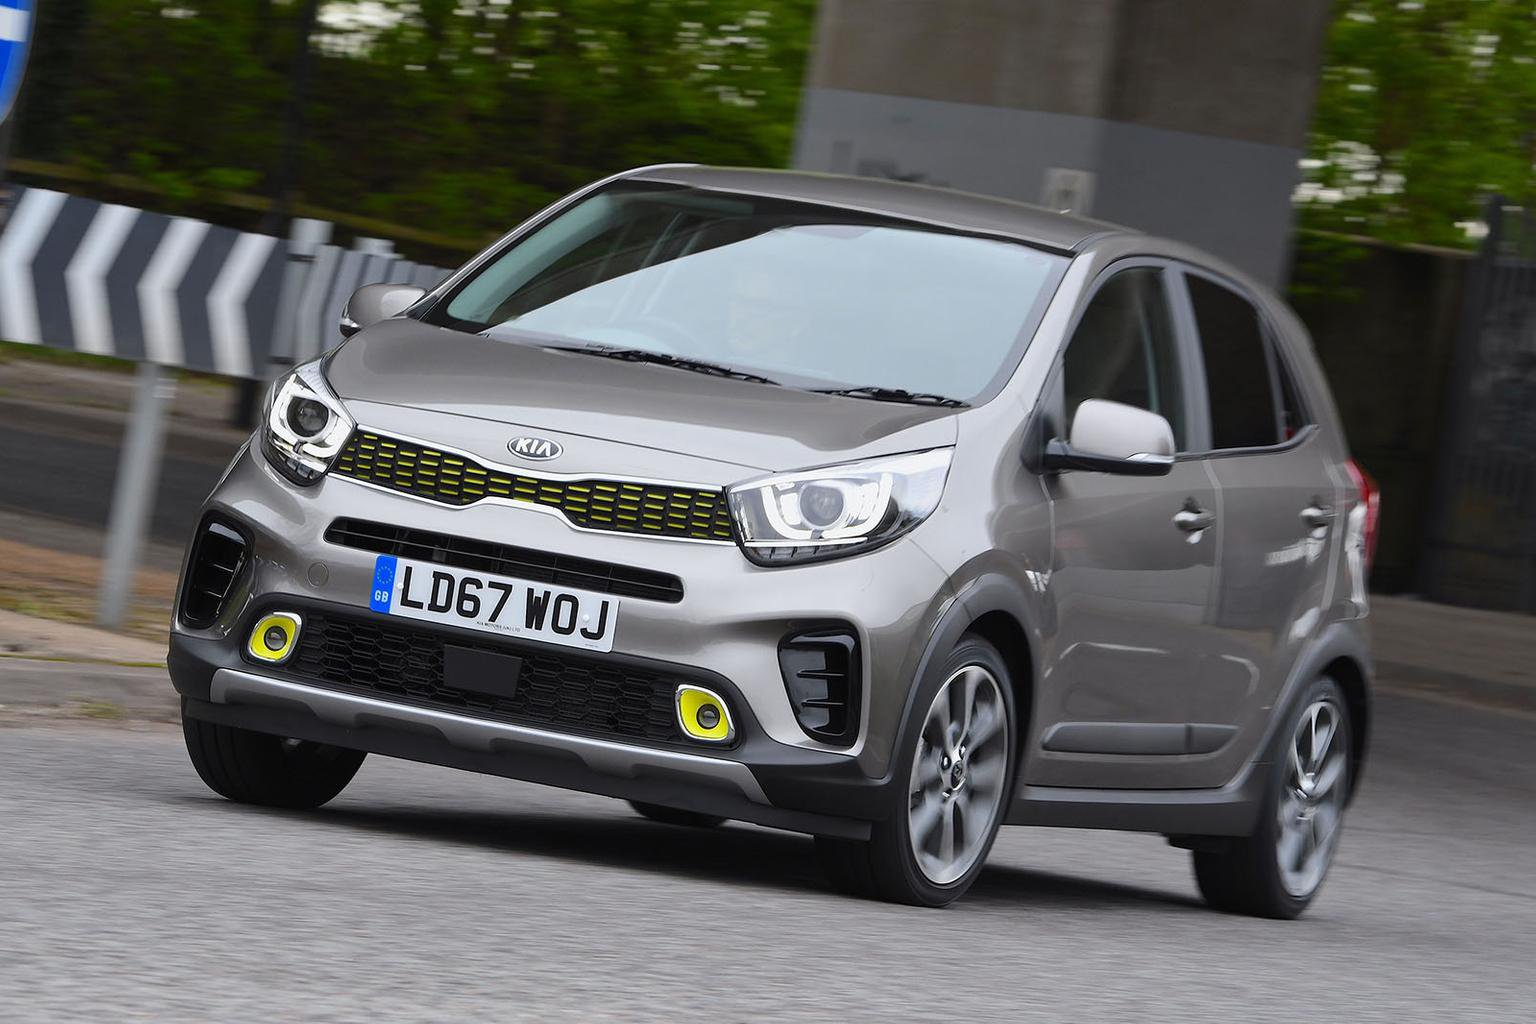 New Kia Picanto X-Line and Vauxhall Viva Rocks vs Suzuki Ignis